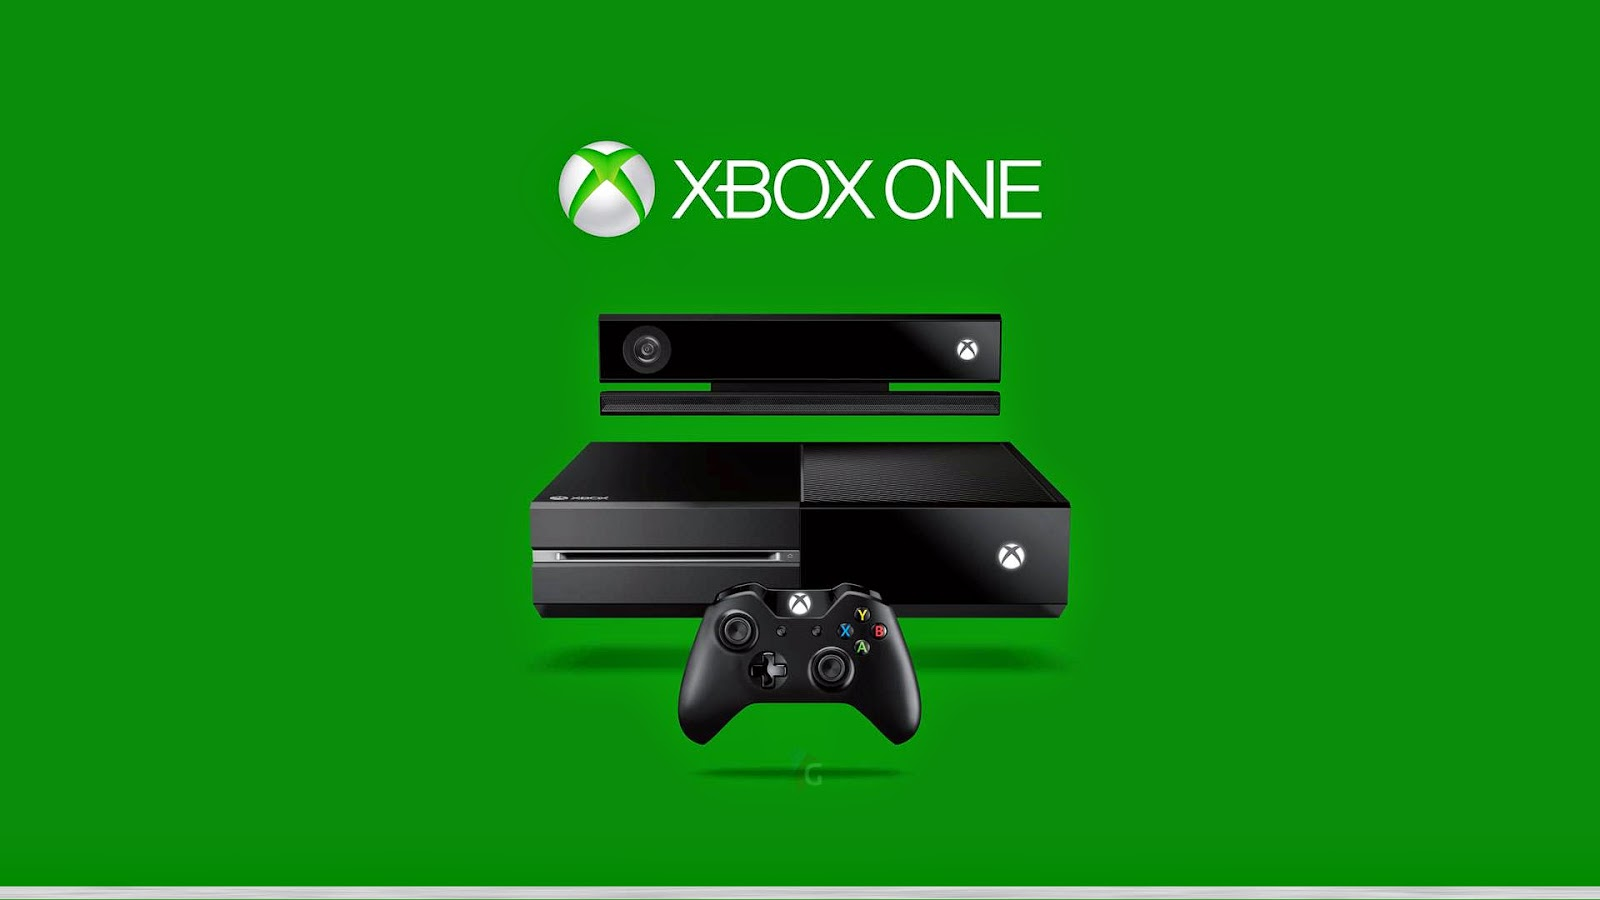 Xbox One Wallpapers Hd